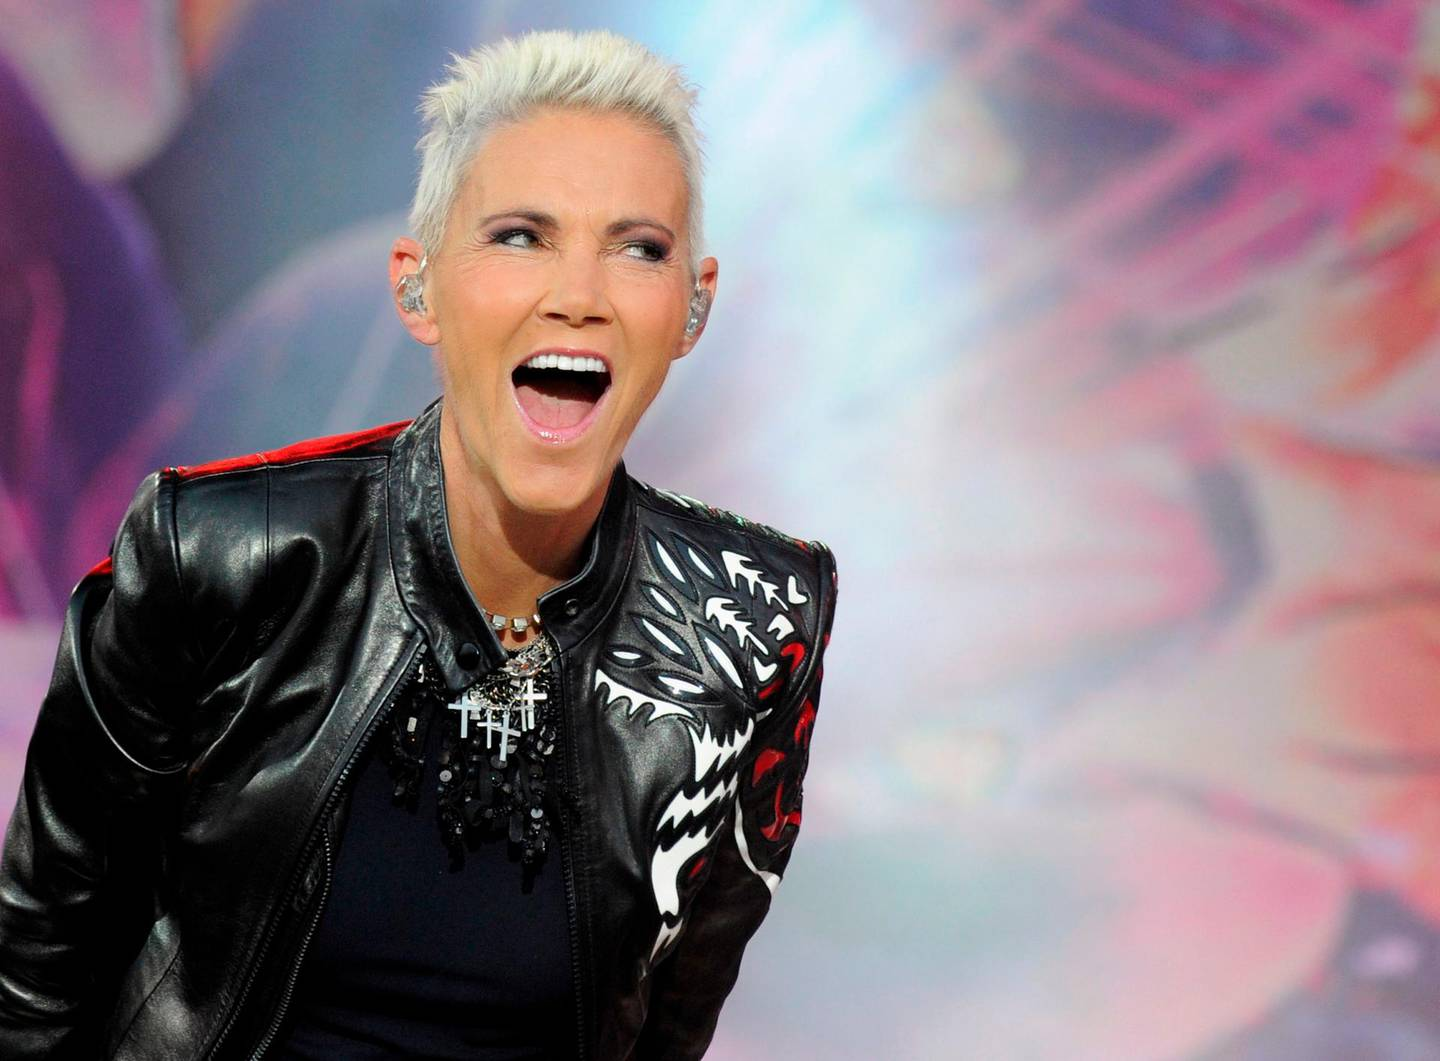 Picture taken on June 12, 2011 shows singer Marie Fredriksson of Swedish band Roxette performing during a concert in Oberursel near Frankfurt am Main, western Germany. As her management announced on December 10, 2019, Fredriksson died on December 9, 2019 at the age of 61. - Germany OUT  / AFP / dpa / Boris Roessler